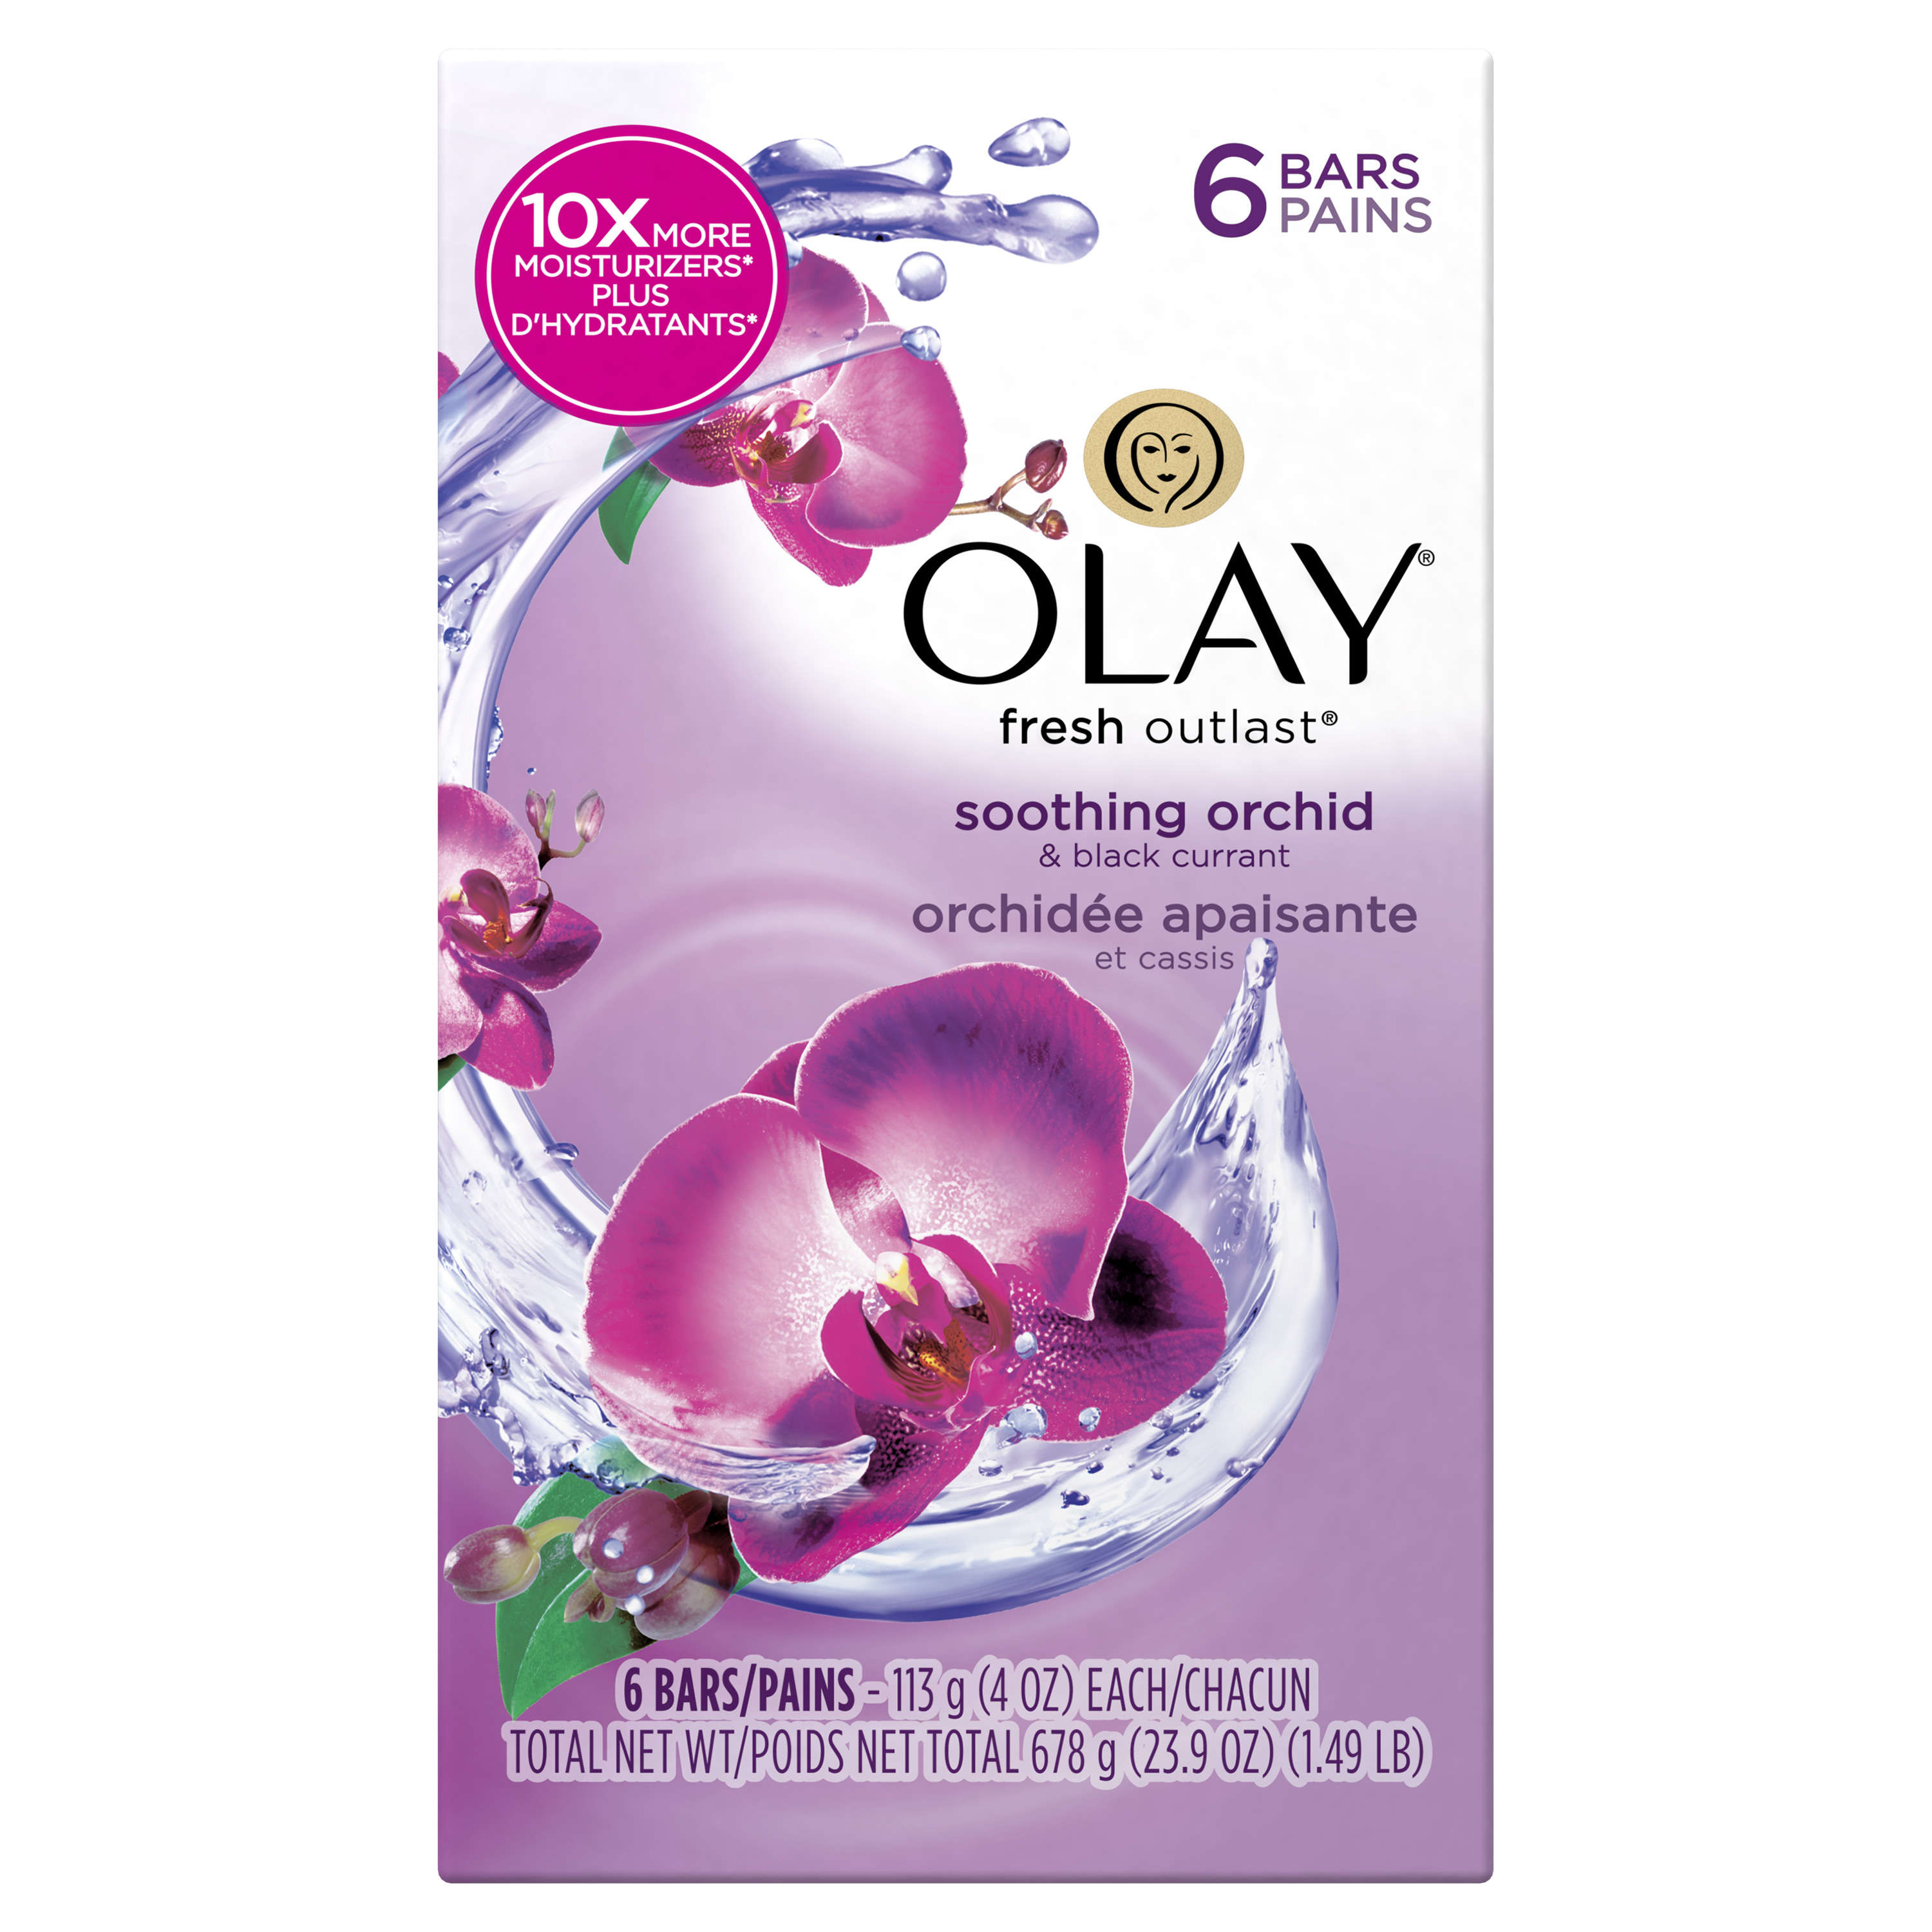 Olay Fresh Outlast Soothing Orchid & Black Currant Beauty Bar 4 oz, 6 count